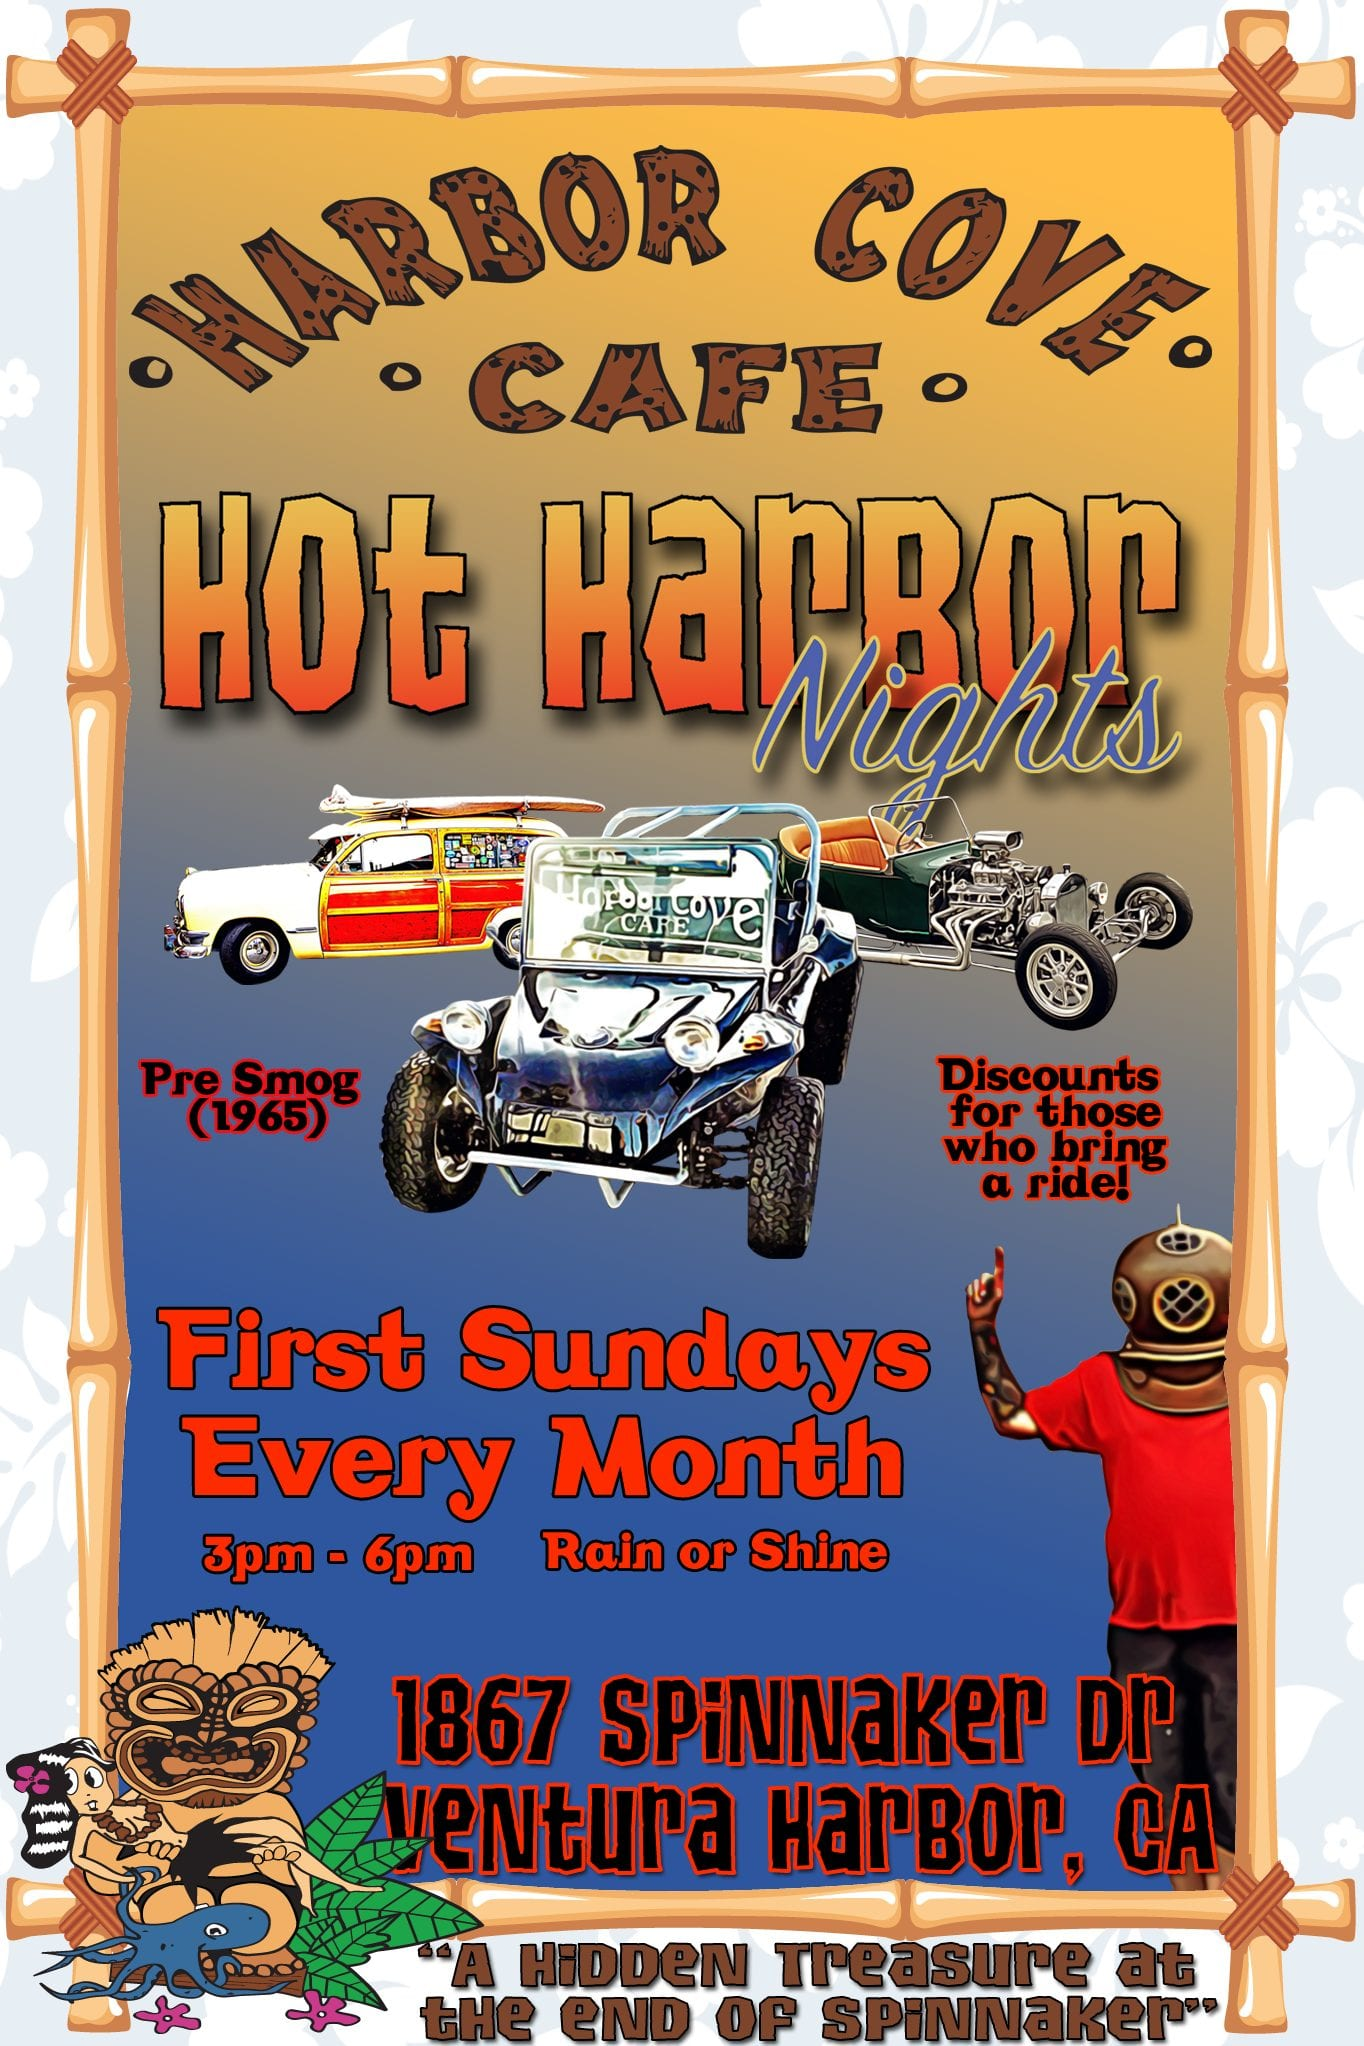 hot harbor nights at harbor cove cafe